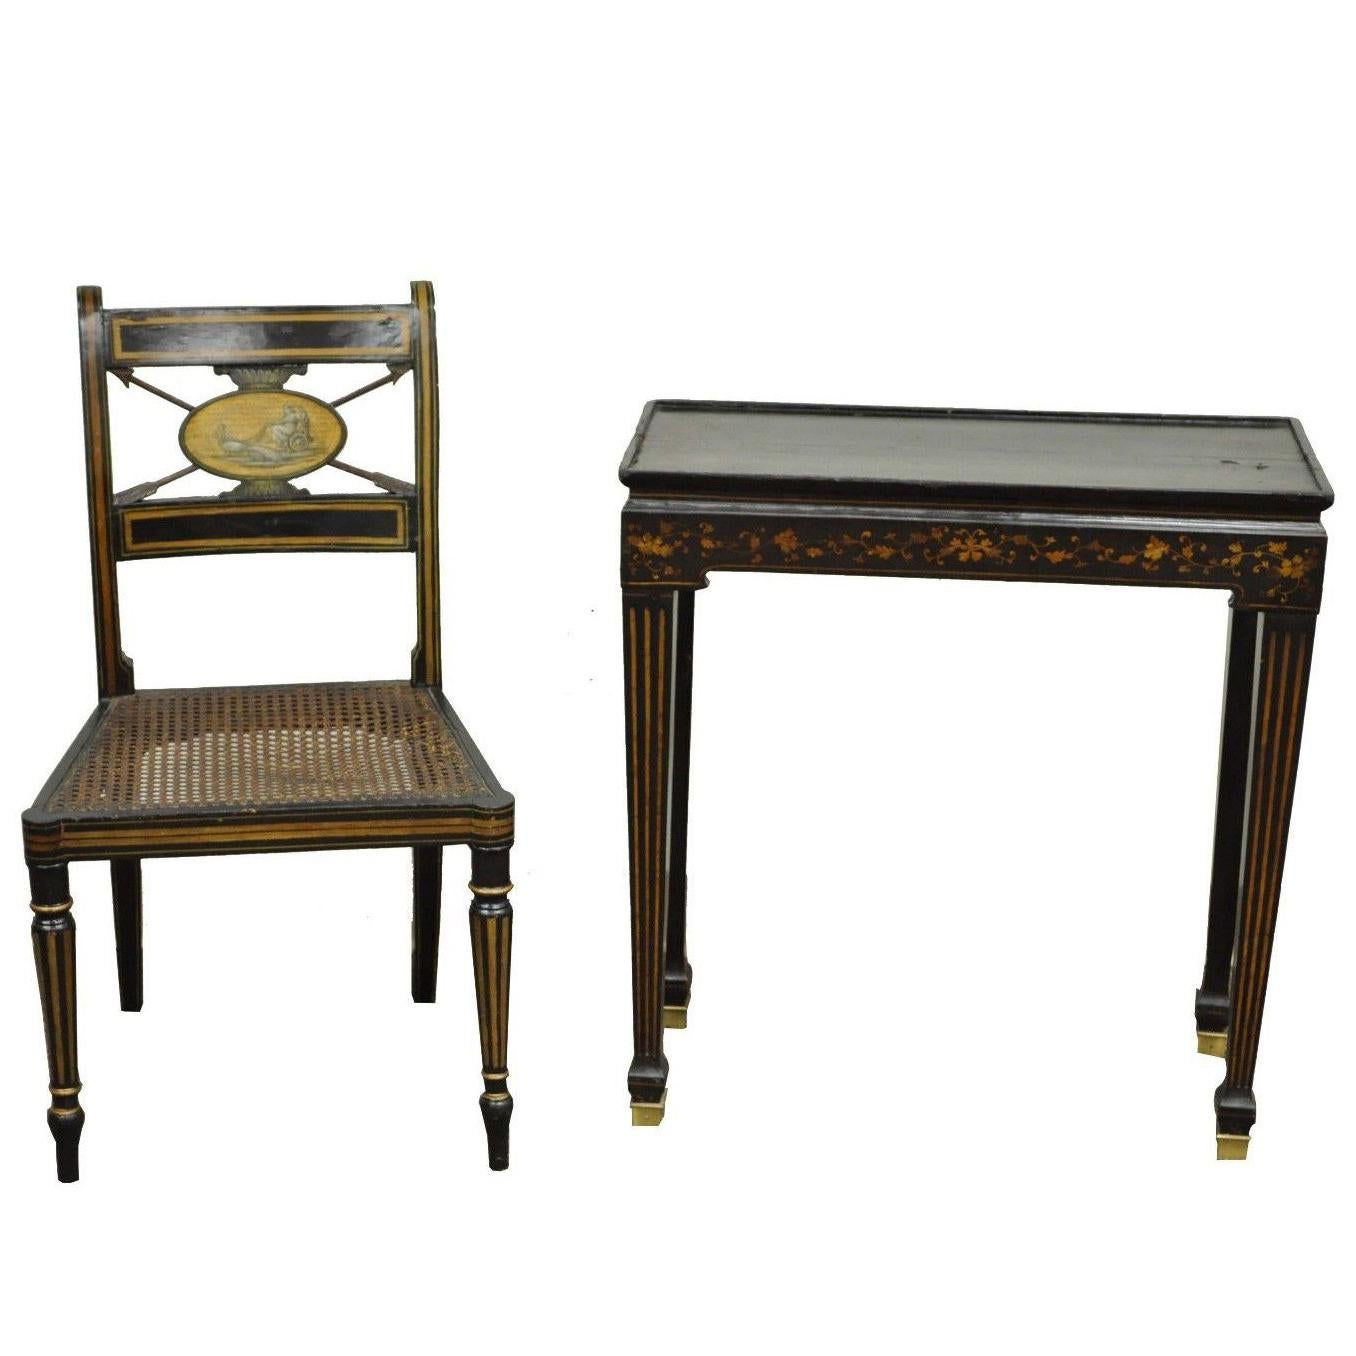 - Antique Telephone Tables - 137 For Sale On 1stdibs